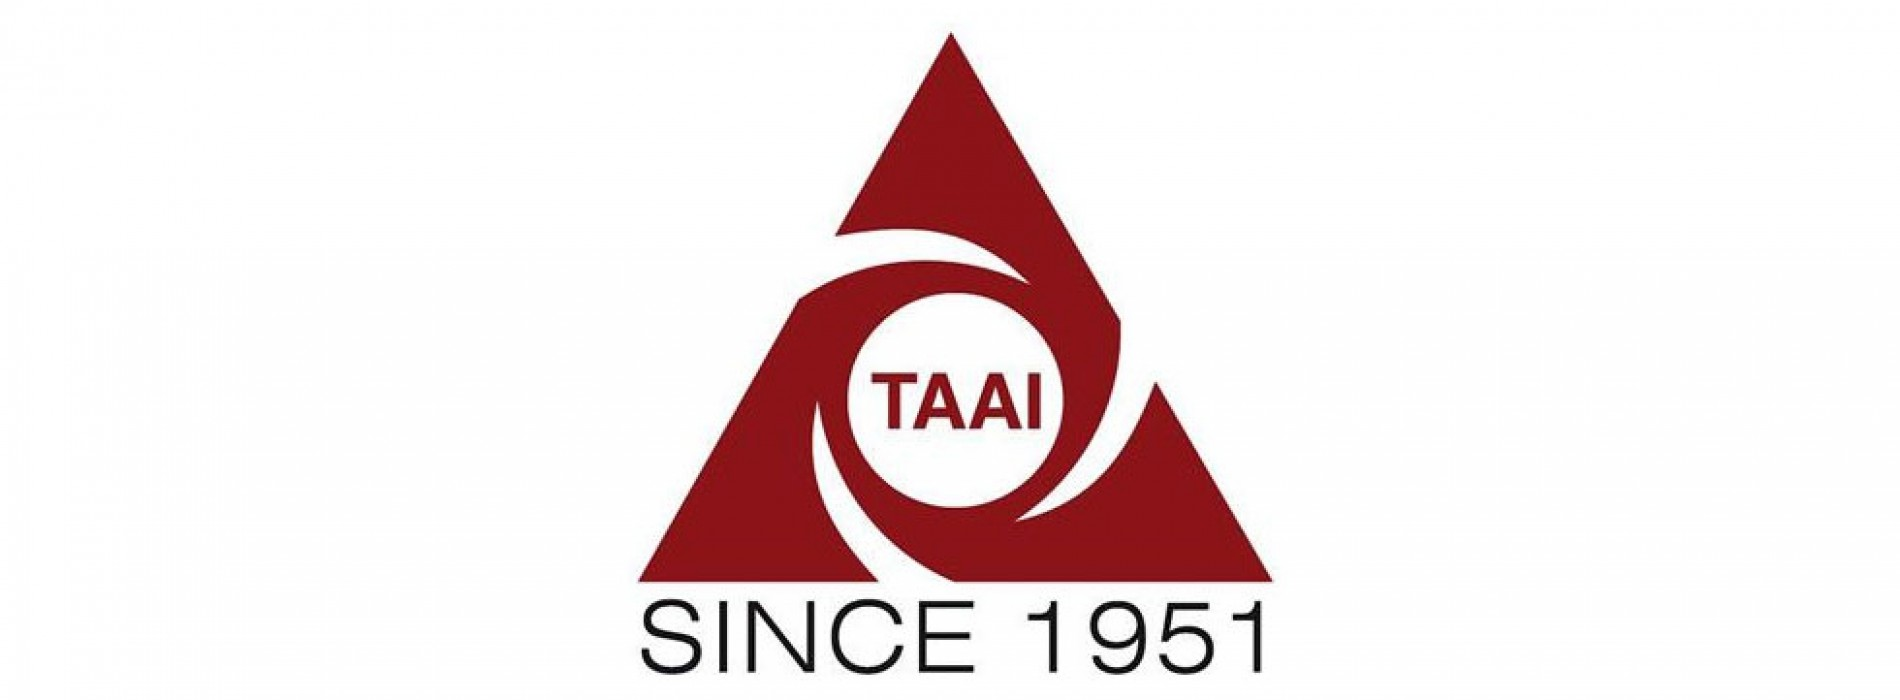 TAAI convention to be held at Abu Dhabi